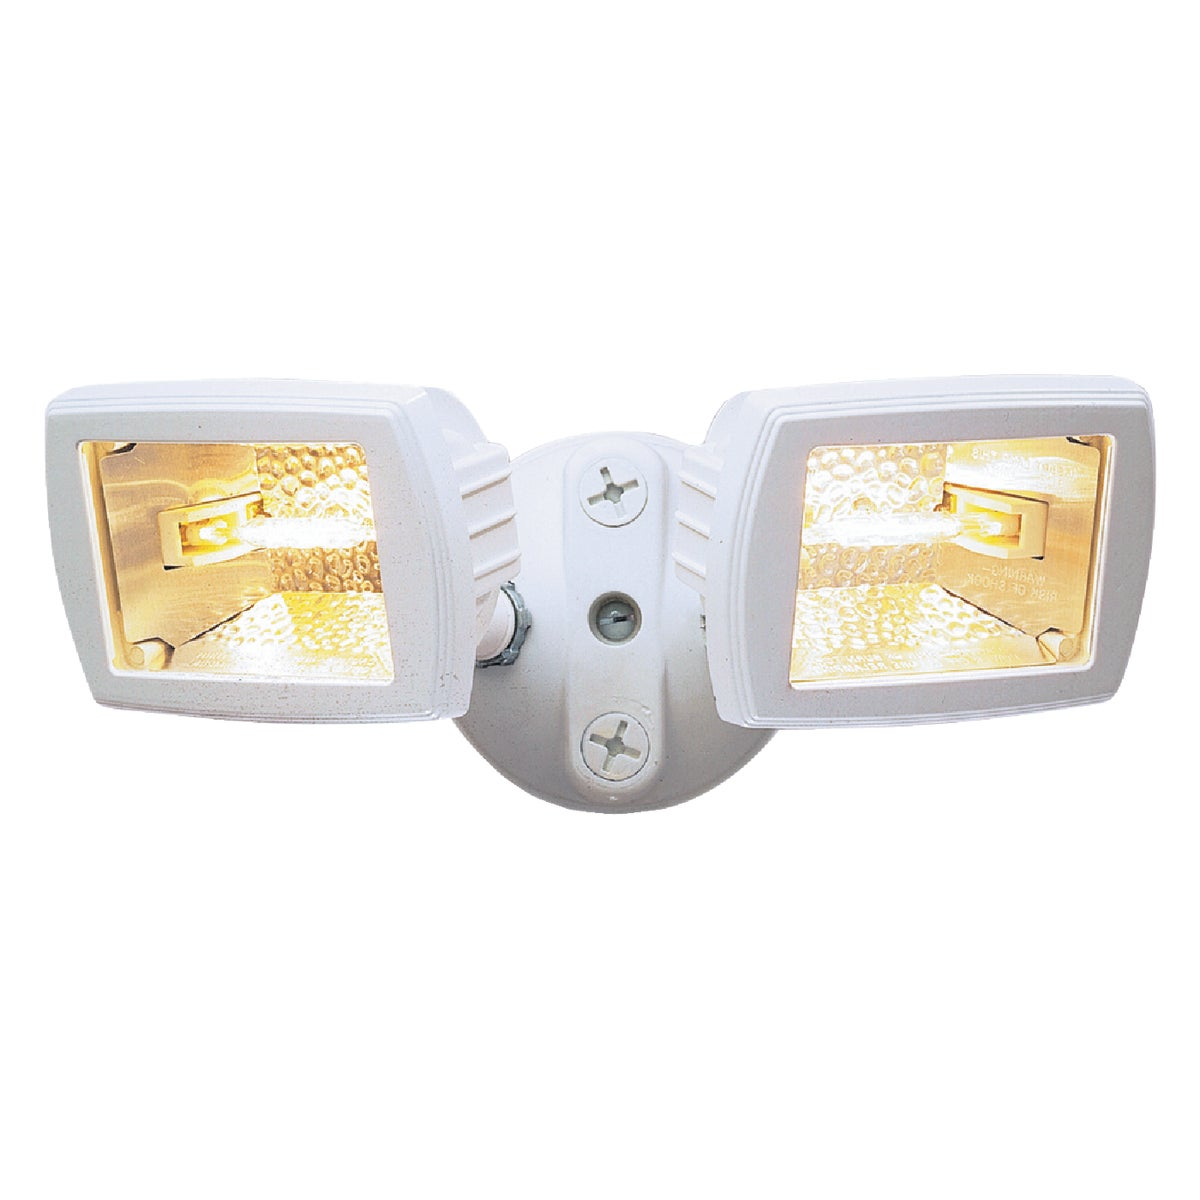 TWIN WHT QUARTZ FIXTURE - TMQ150W by Cooper Lighting